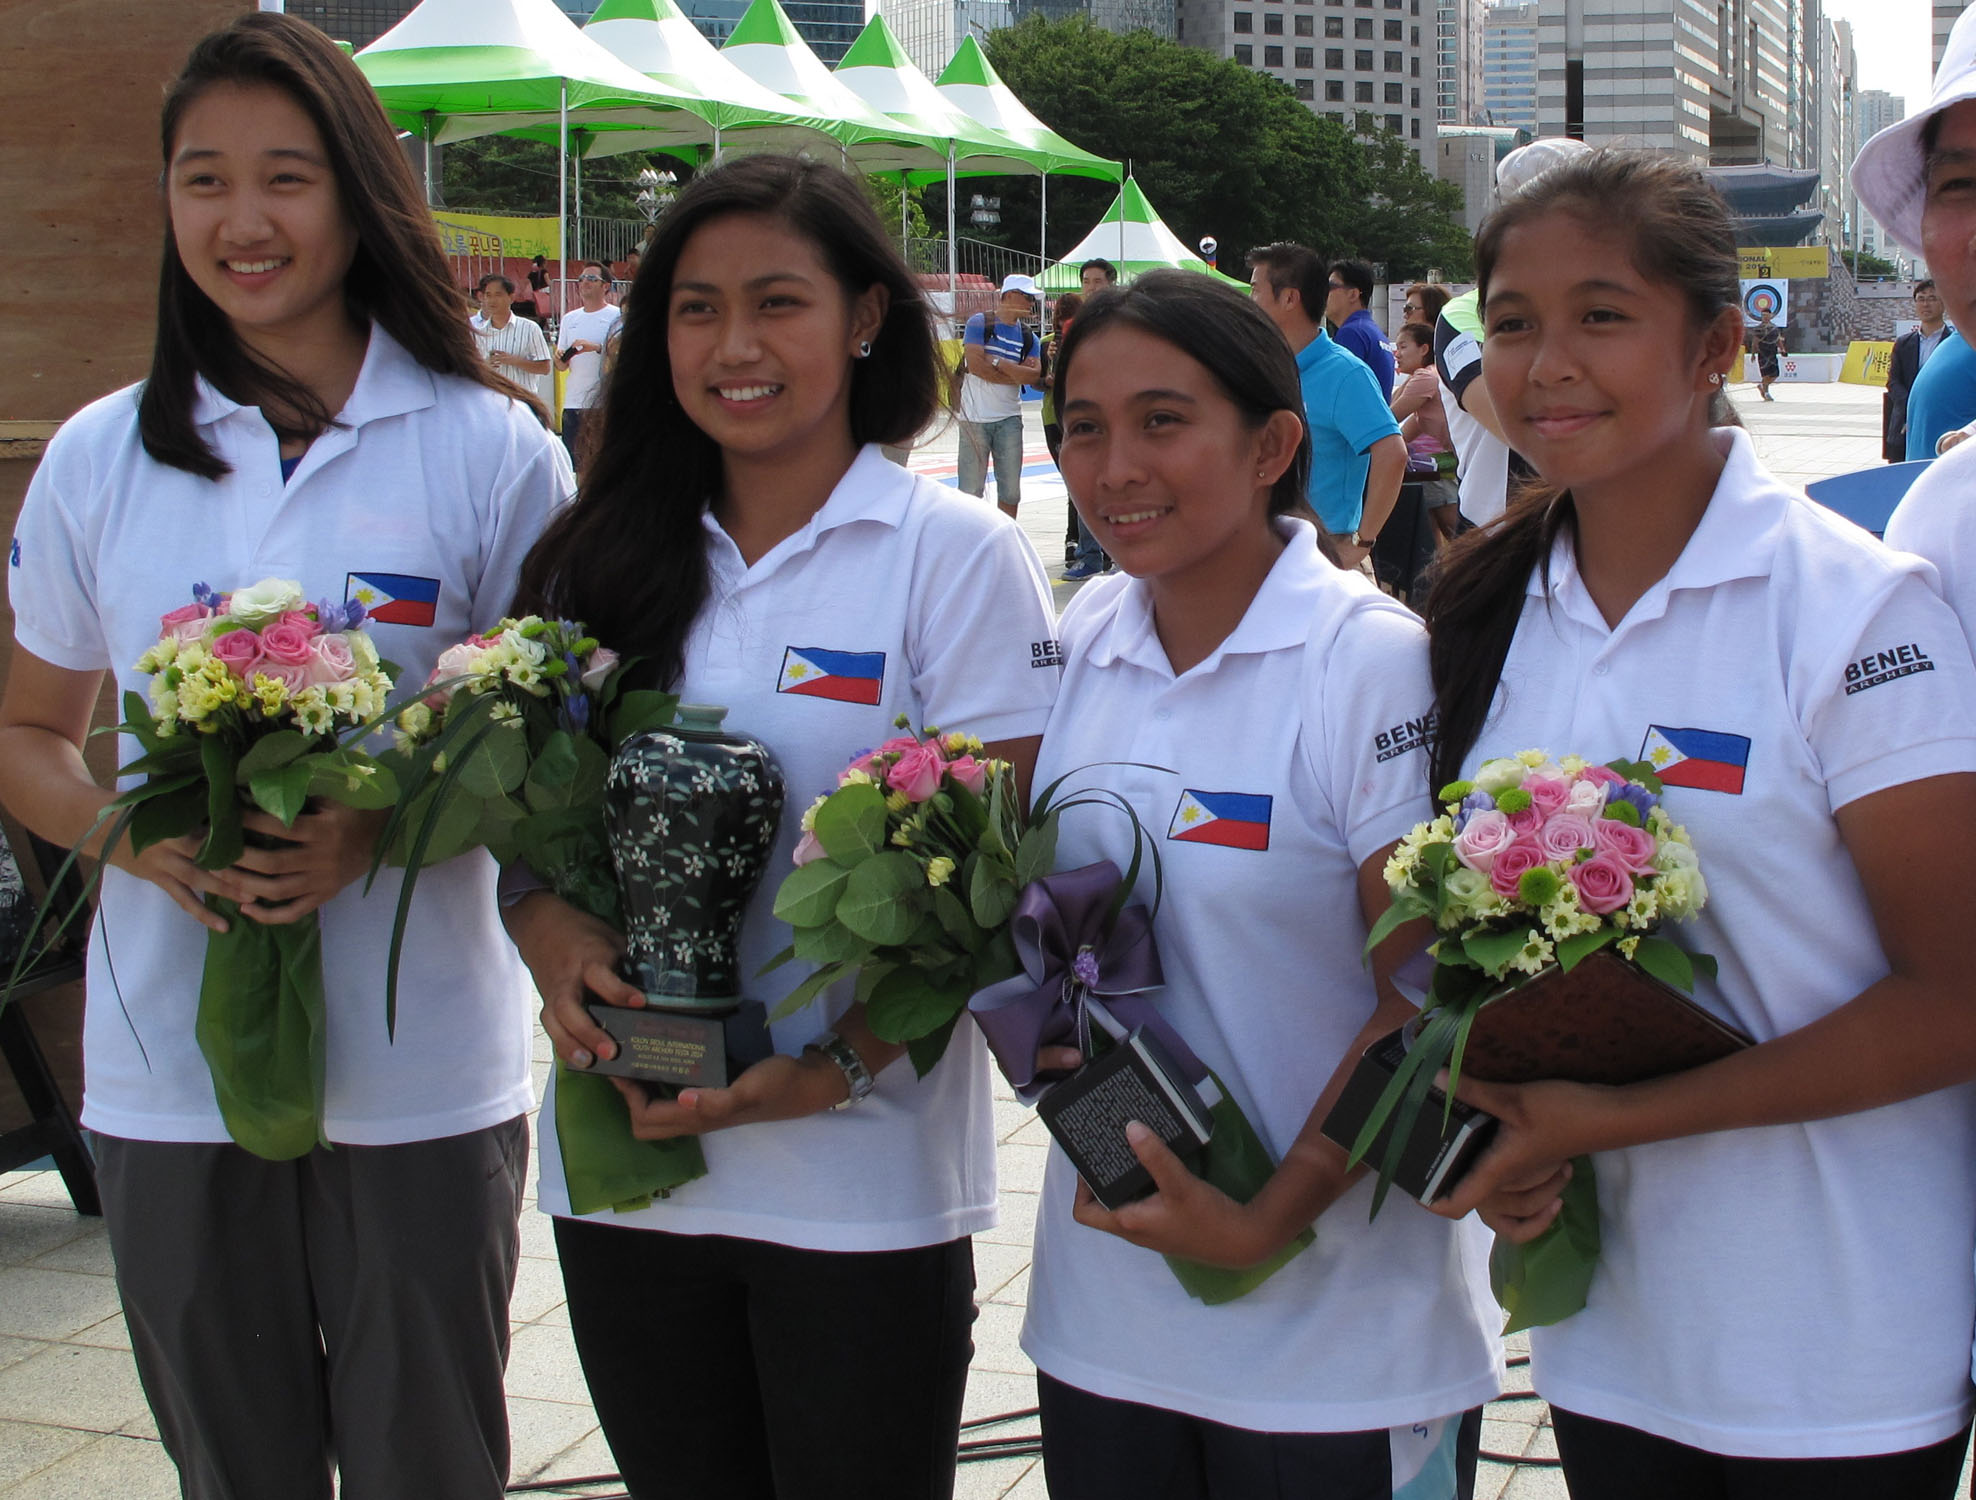 Members of the Philippine junior archery team (from left) Bianca Gotuaco, Kareel Hongitan, Crizabelle Merto and Mary Queen Ybañez pose after bagging the team bronze in the Seoul International Archery Festa last week.